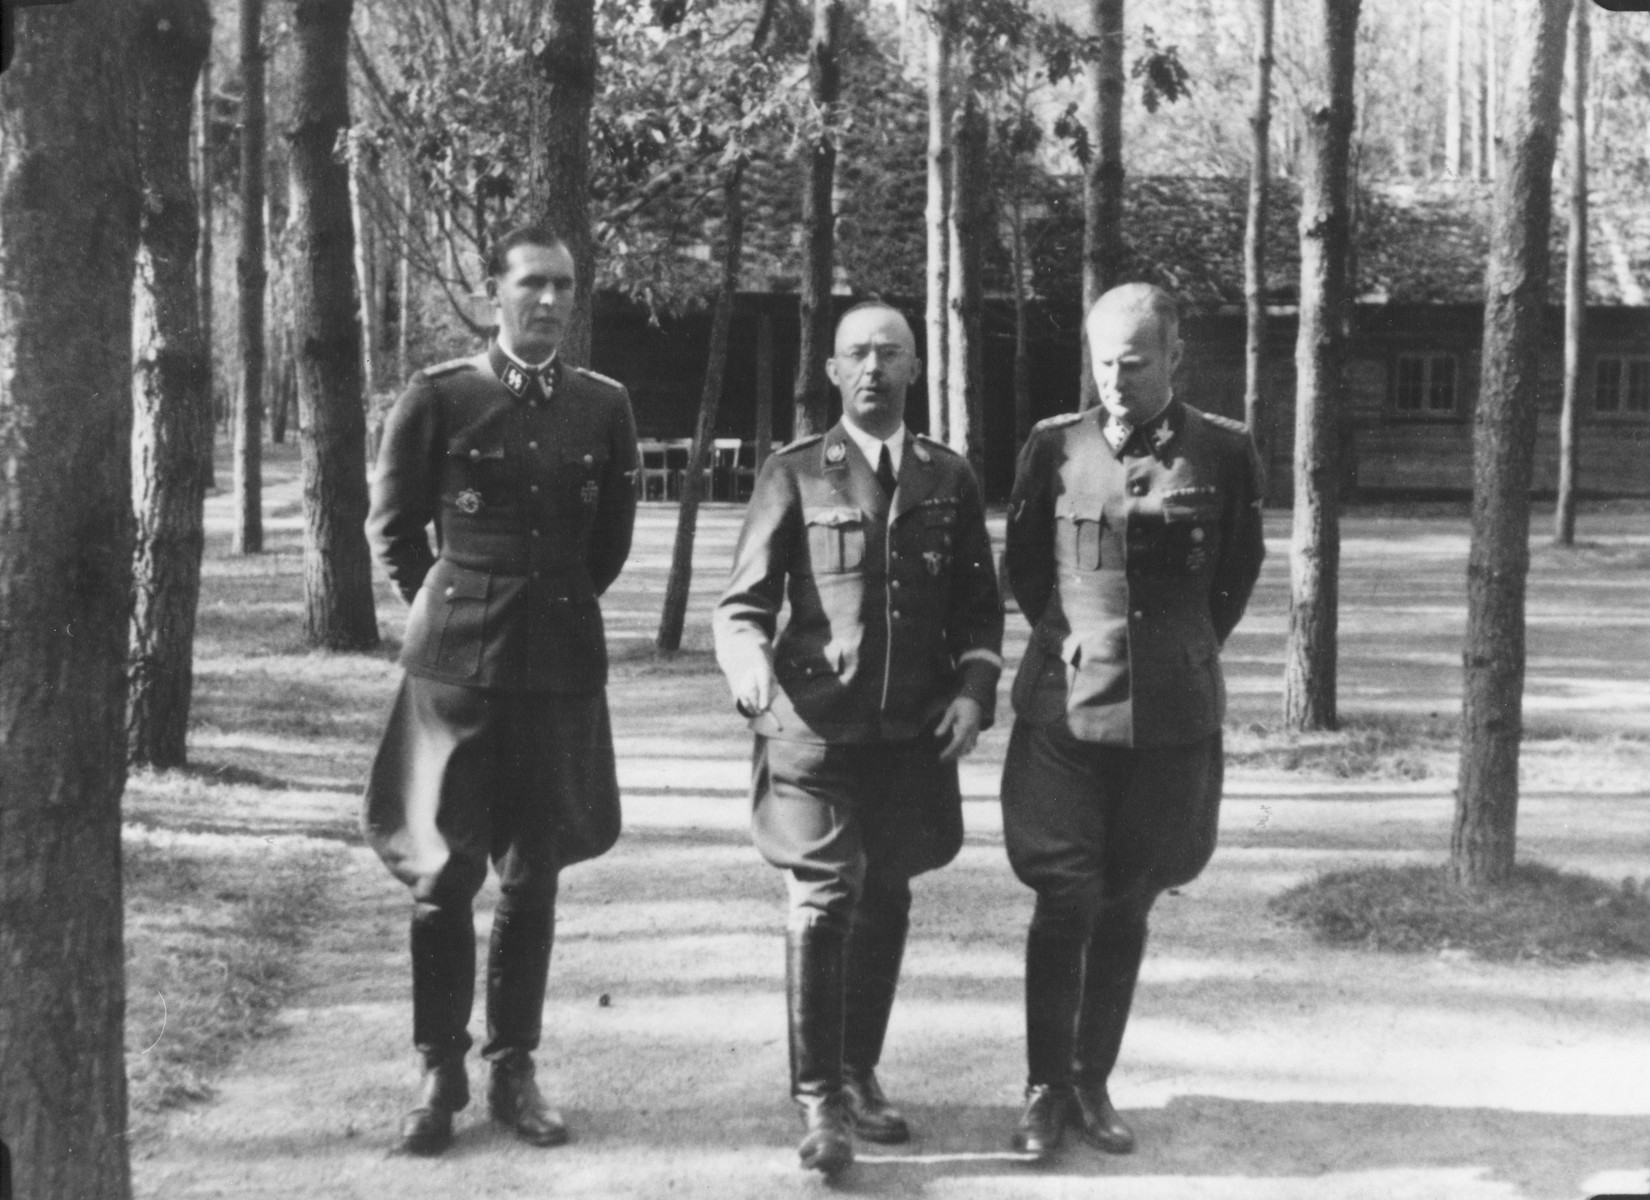 Reichsfuehrer-SS Heinrich Himmler strolls with two other SS officials [probably at Wolfsschanze (Wolf's Lair), Hitler's field headquarters in Rastenburg, East Prussia].   Pictured from left to right are: Richard Schulze-Kossens, Himmler and Karl Wolff.